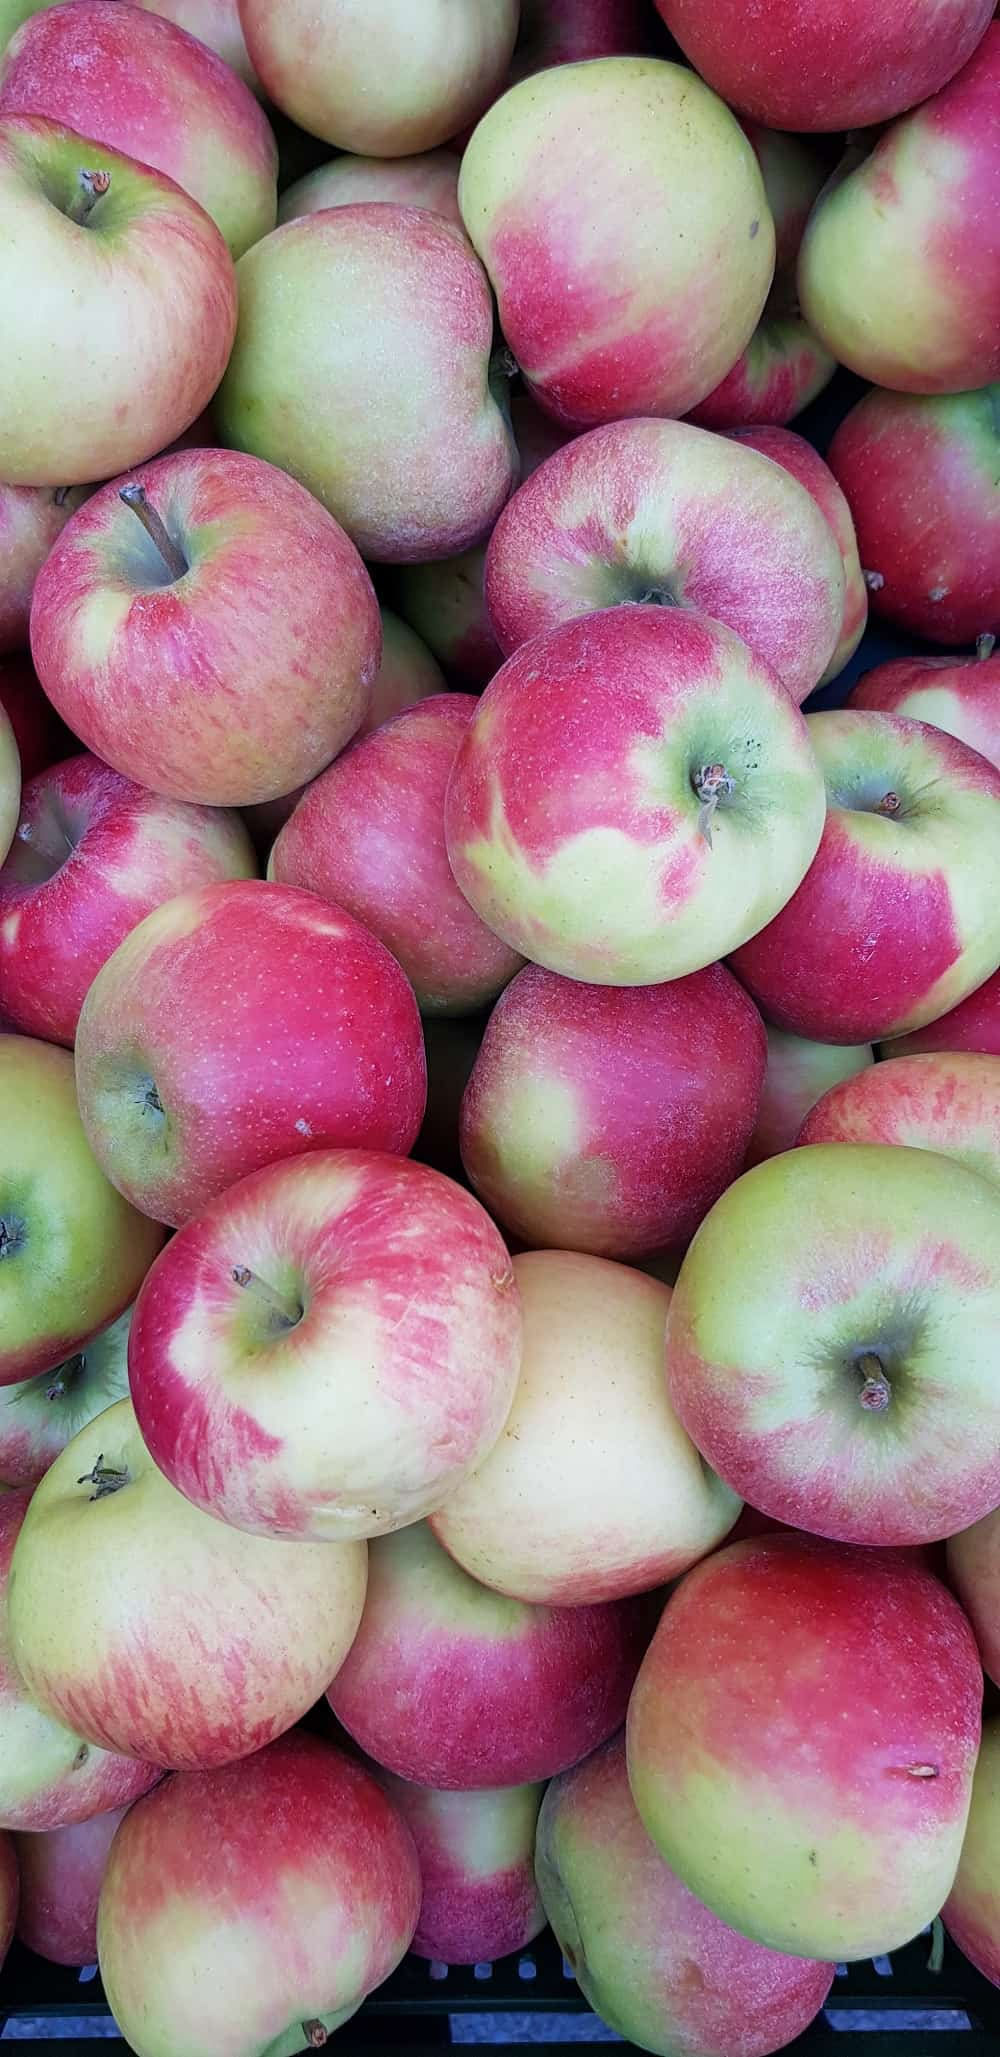 zoom on apples at the market